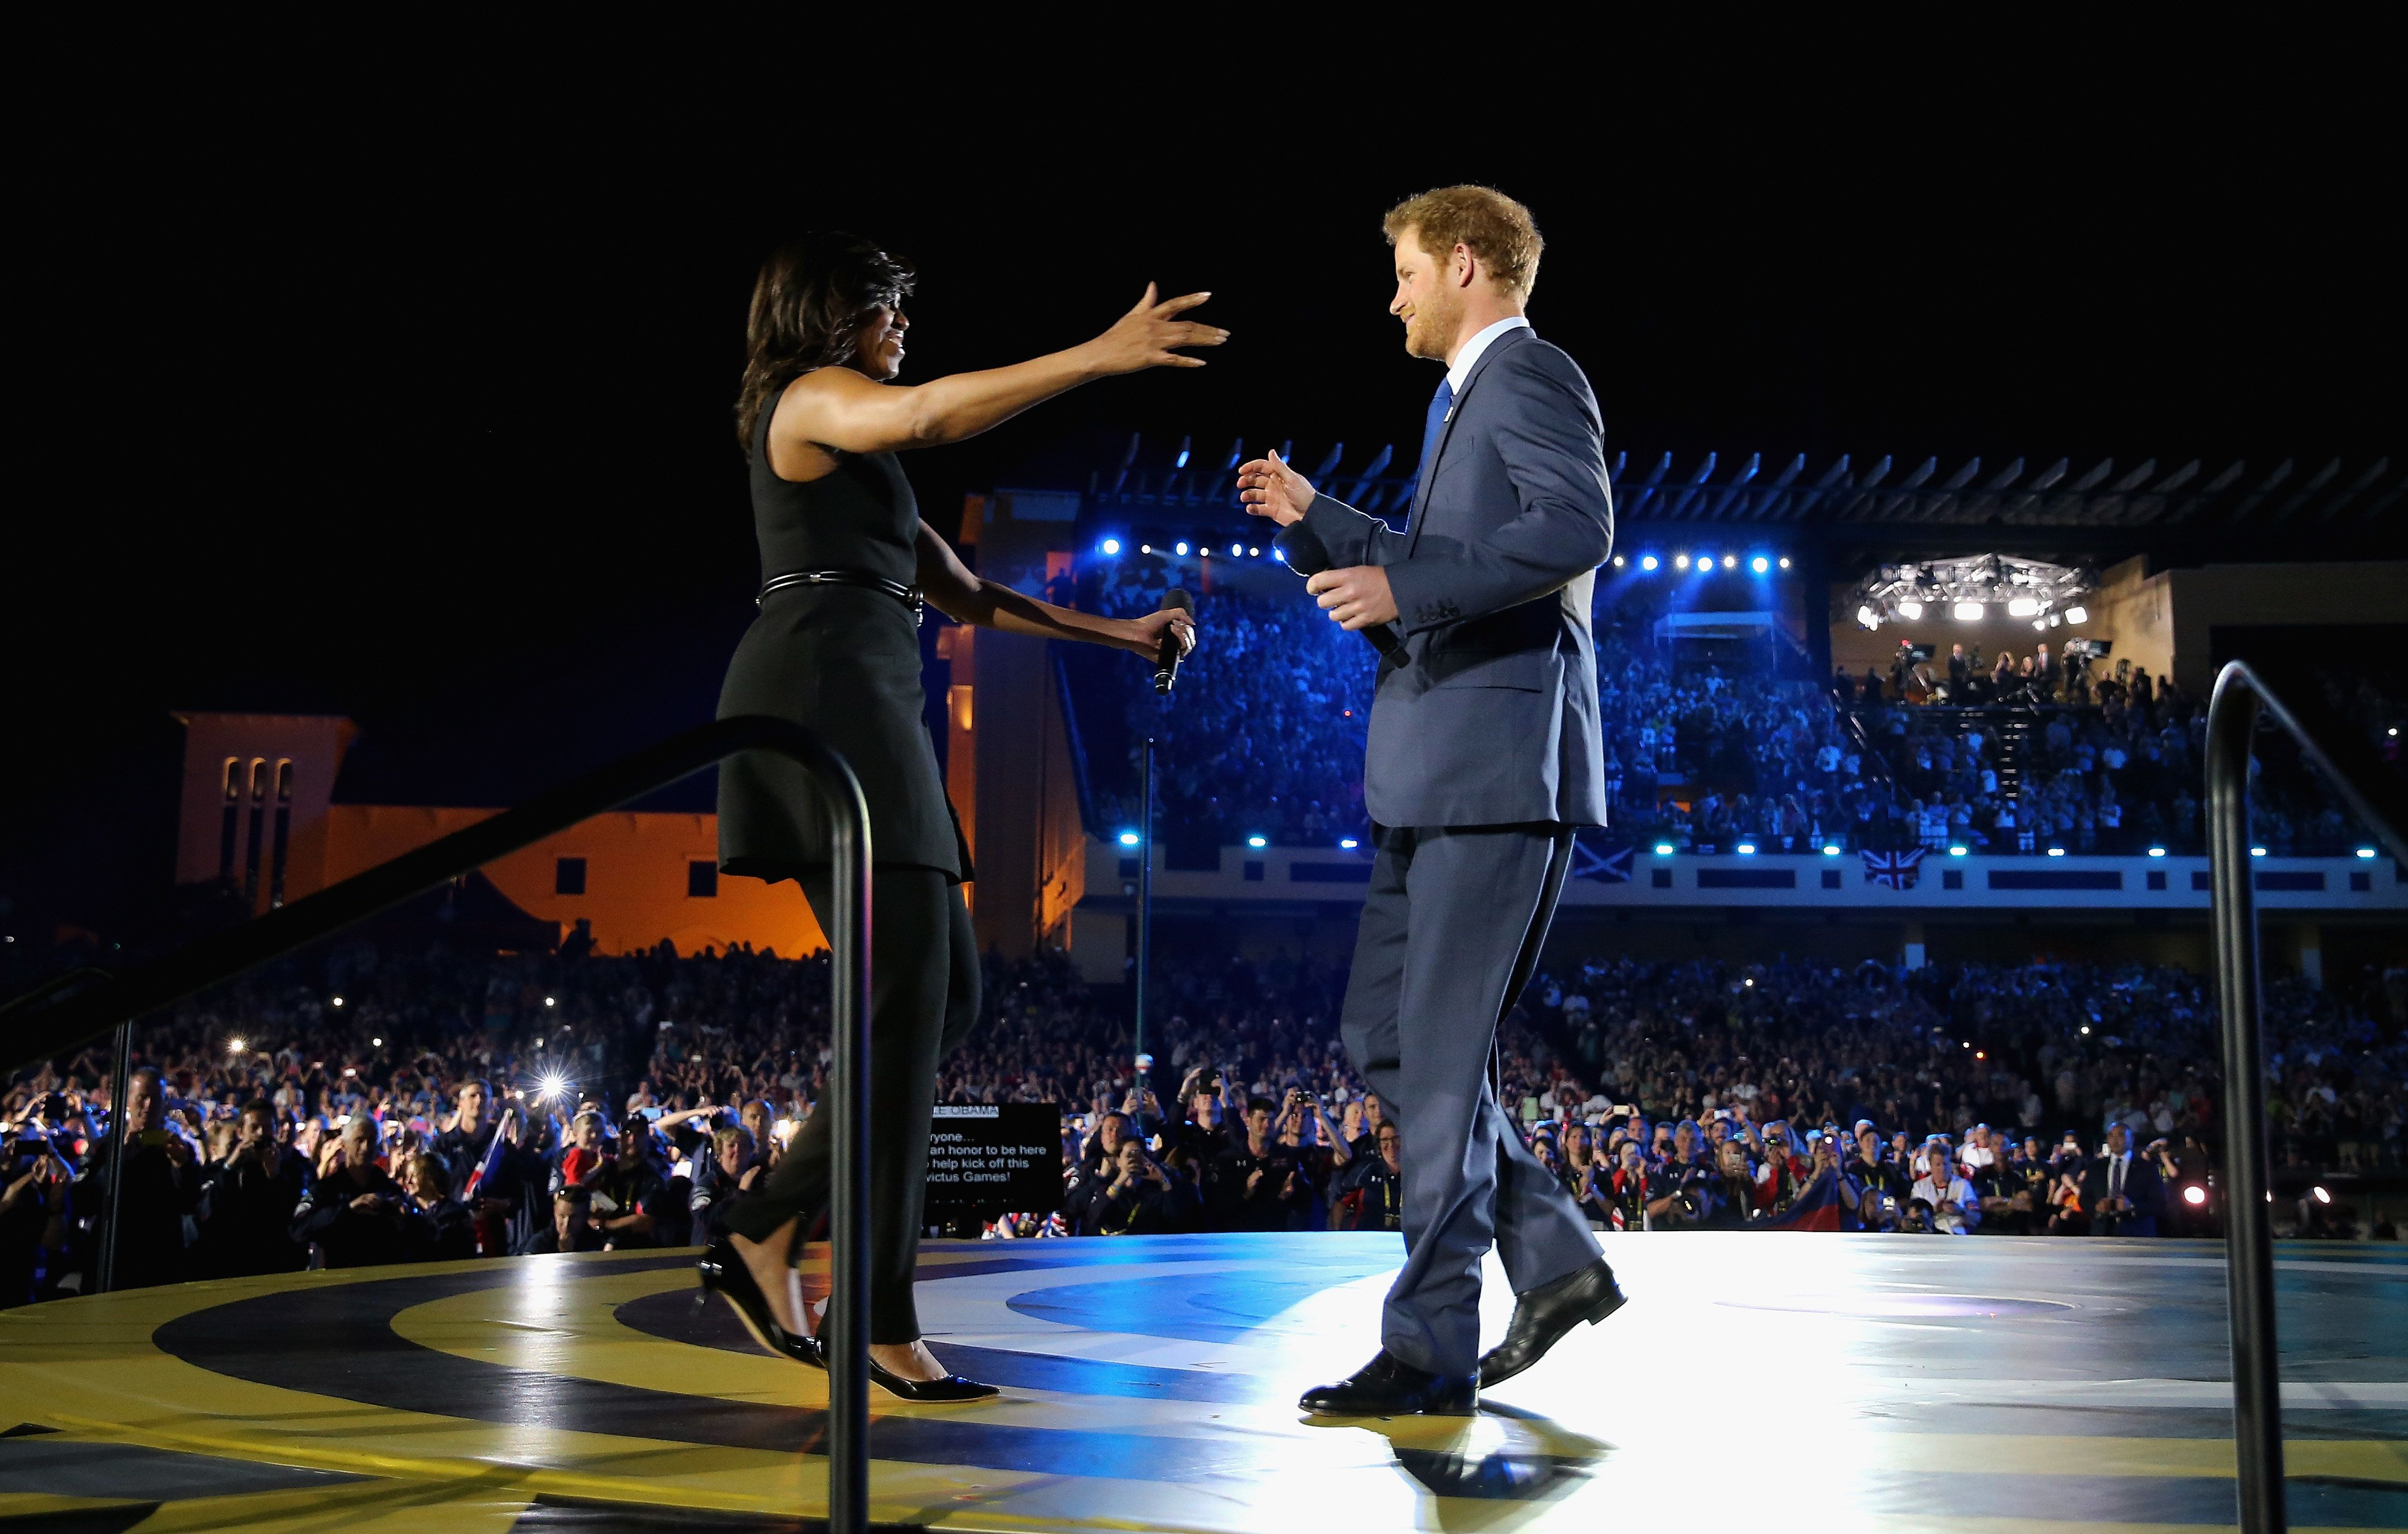 Michelle Obama Goes On A Hugging Spree At The Invictus